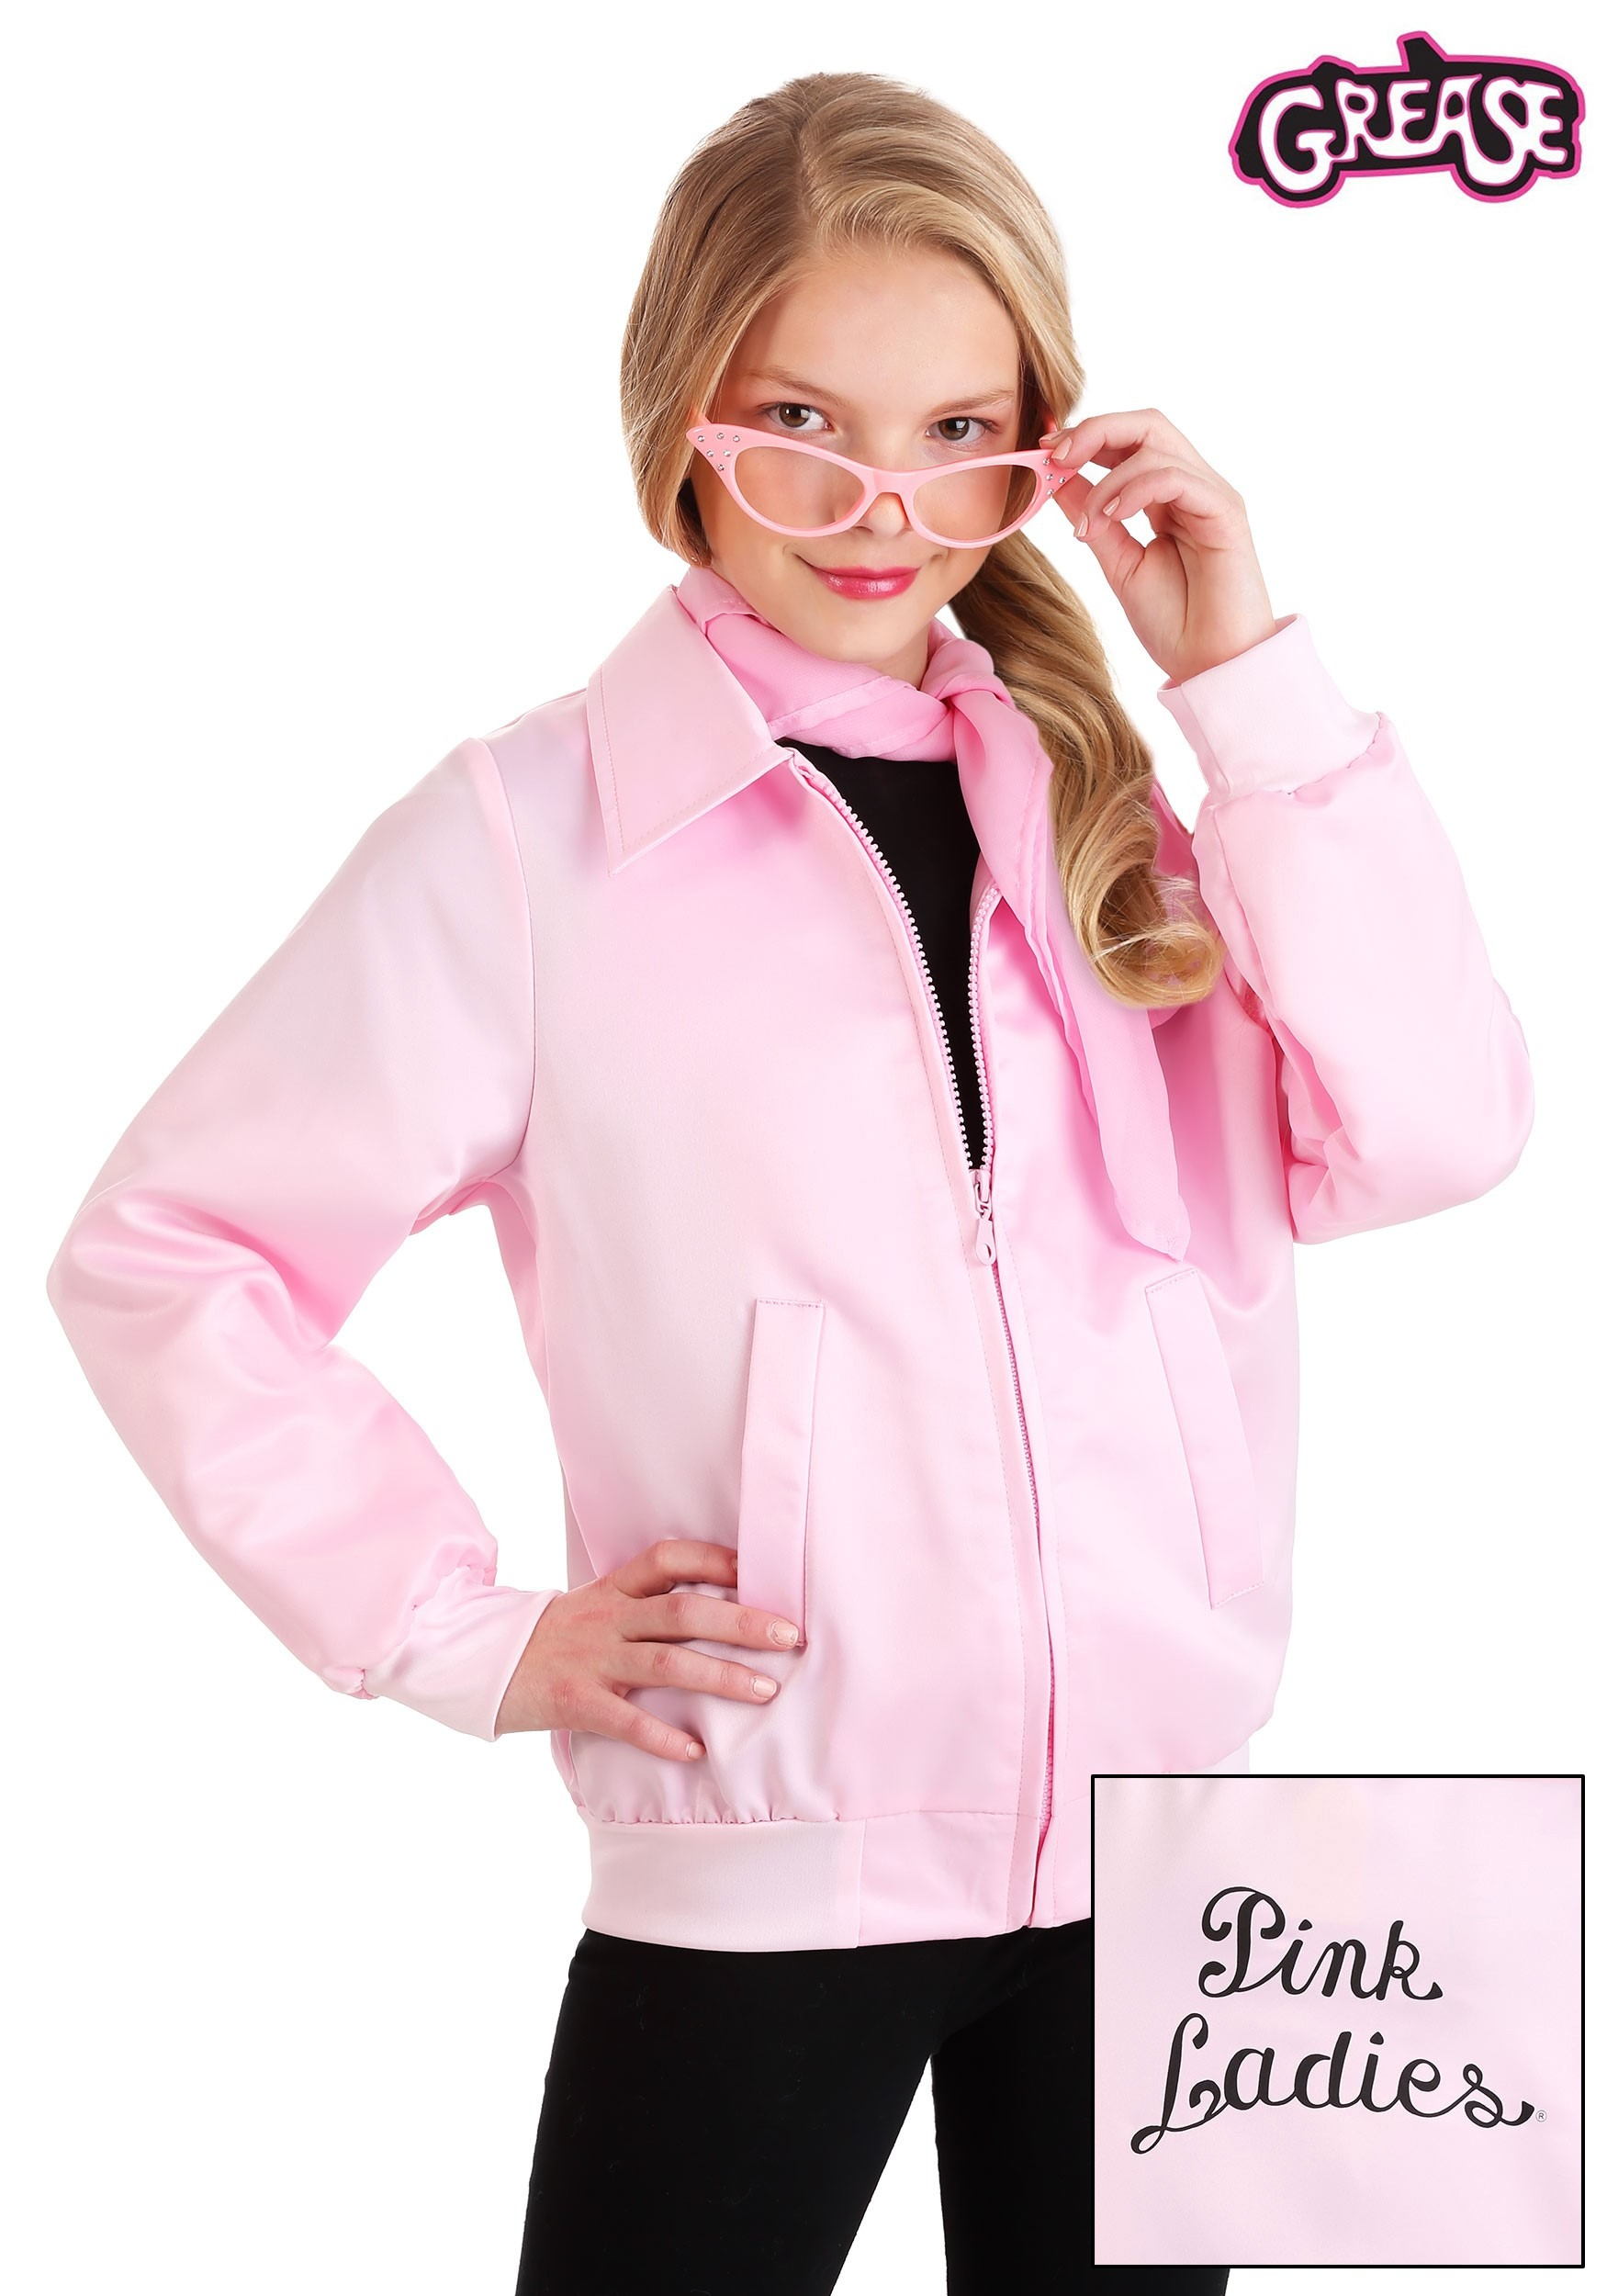 Girls Pink Ladies Jackets Official Grease Kids Childrens Fancy Dress Costume